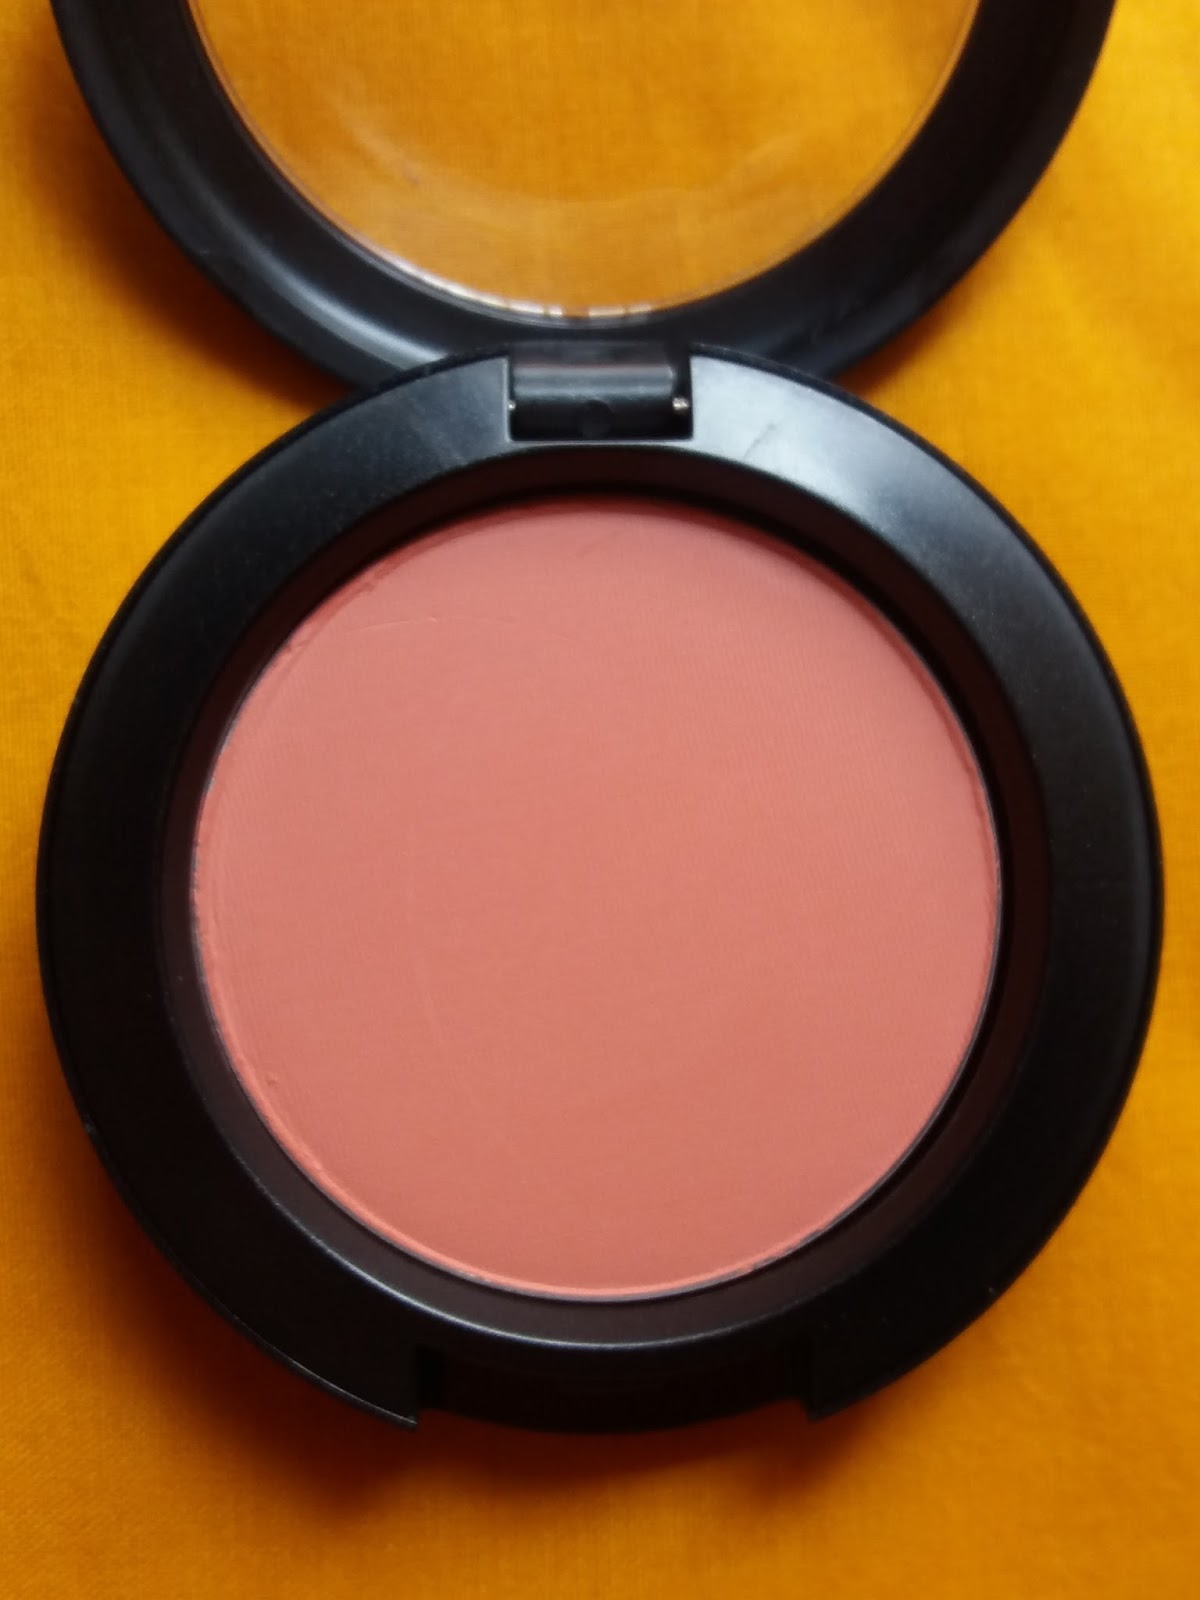 Connu MAC Peaches Sheertone Blush Review & Swatches - My Face Hunter ZV99